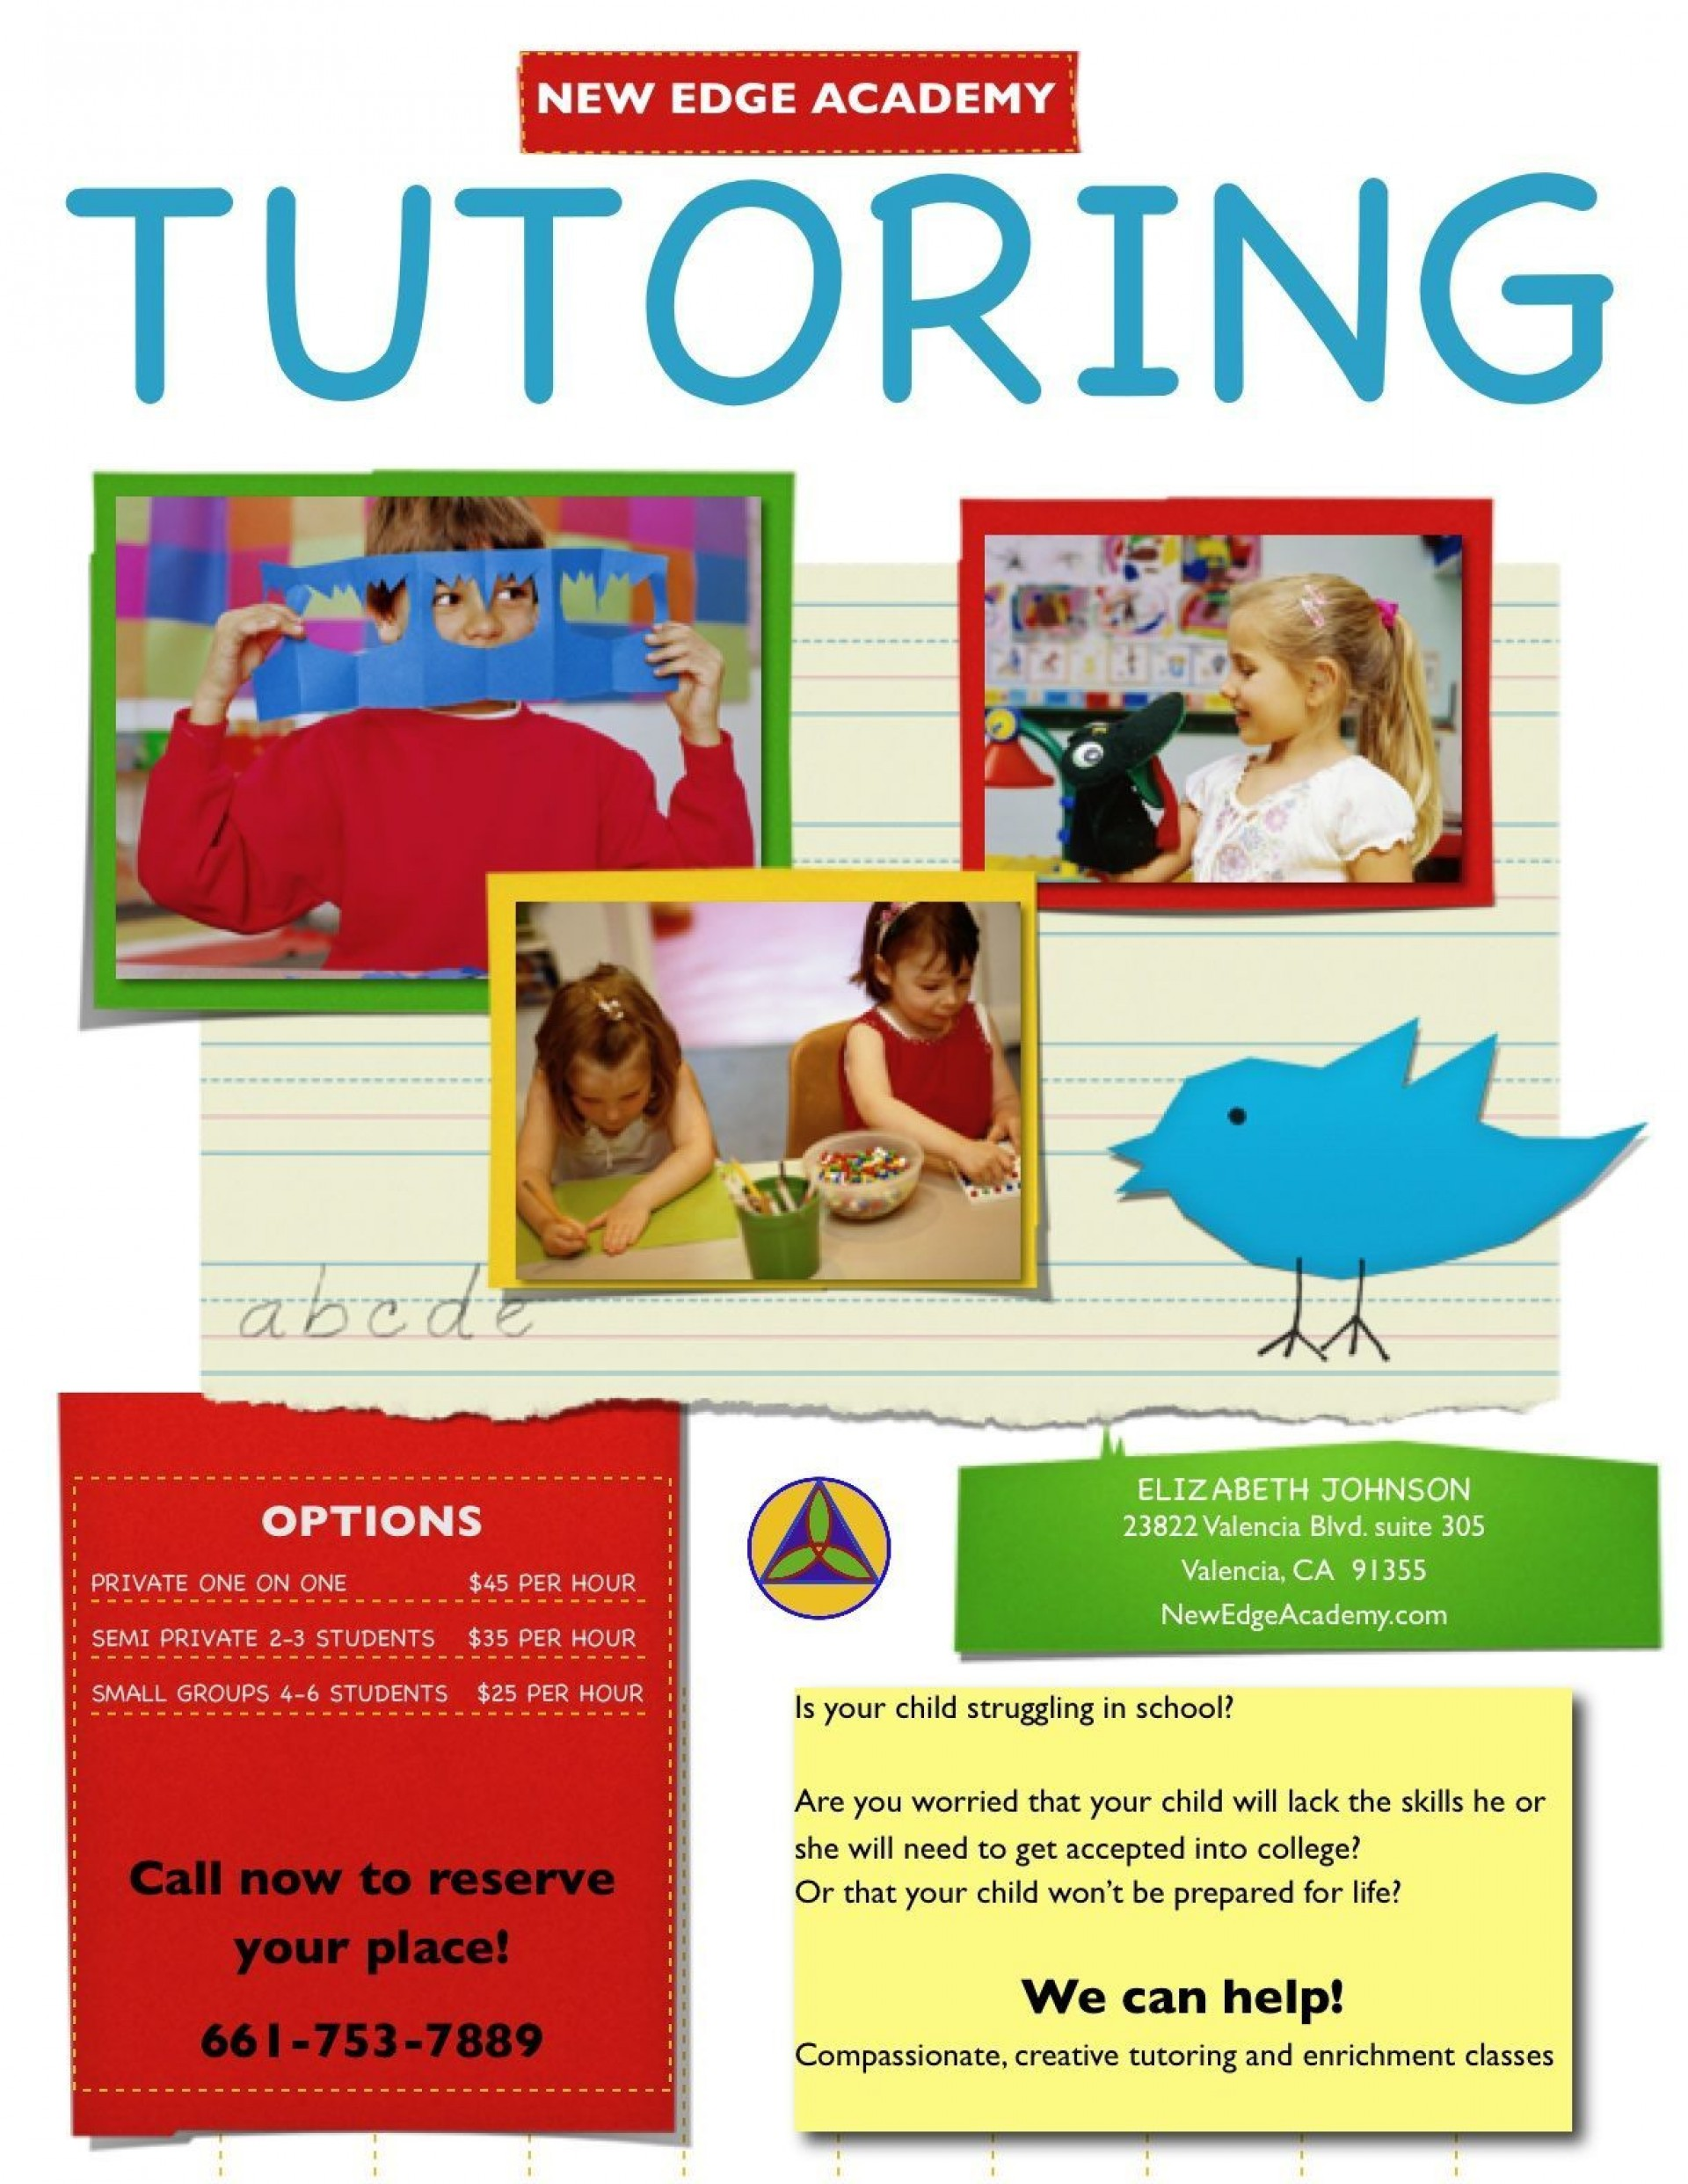 000 Unique Tutoring Flyer Template Free High Def  Math Word1920